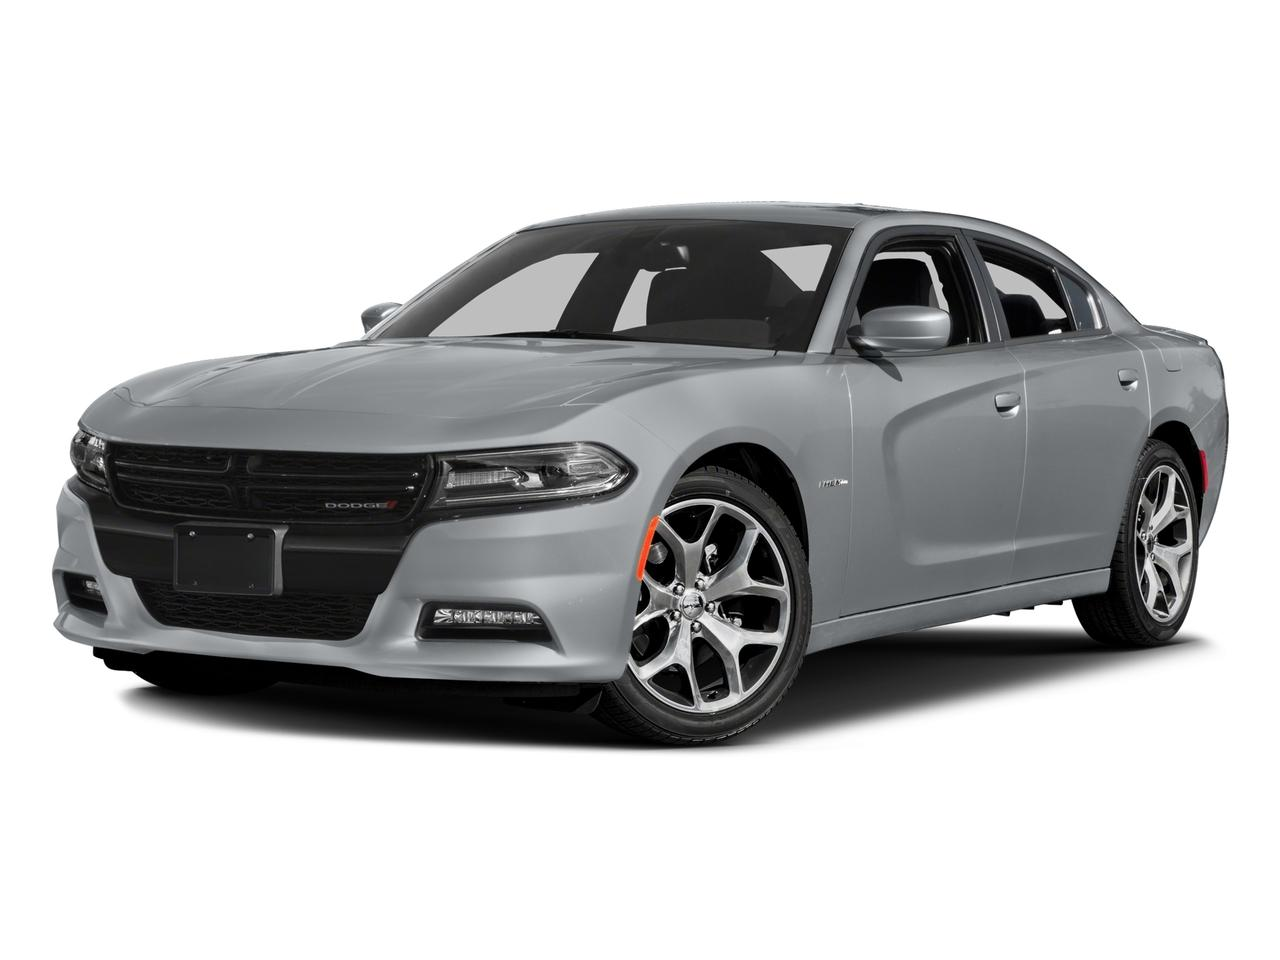 2016 Dodge Charger Vehicle Photo in Jasper, GA 30143